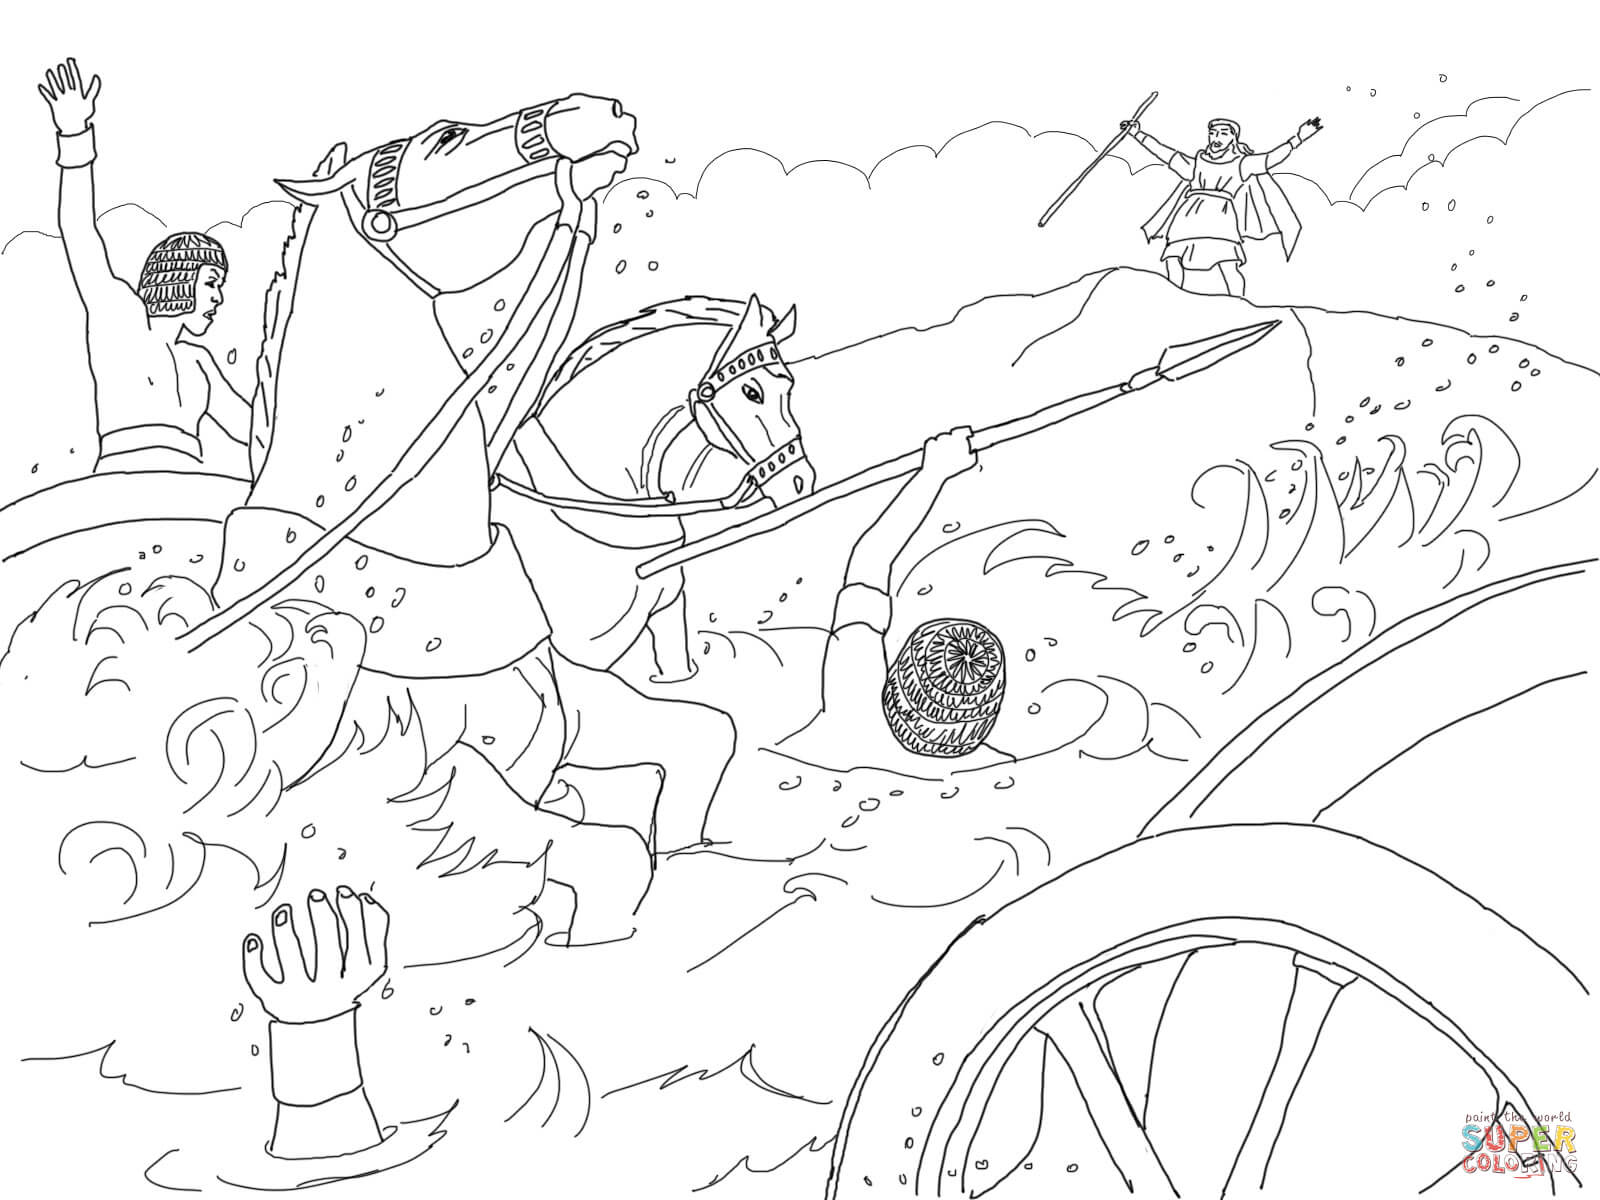 moses coloring pages red sea crossing location | Coloring Pages Crossing The Red Sea - Coloring Home